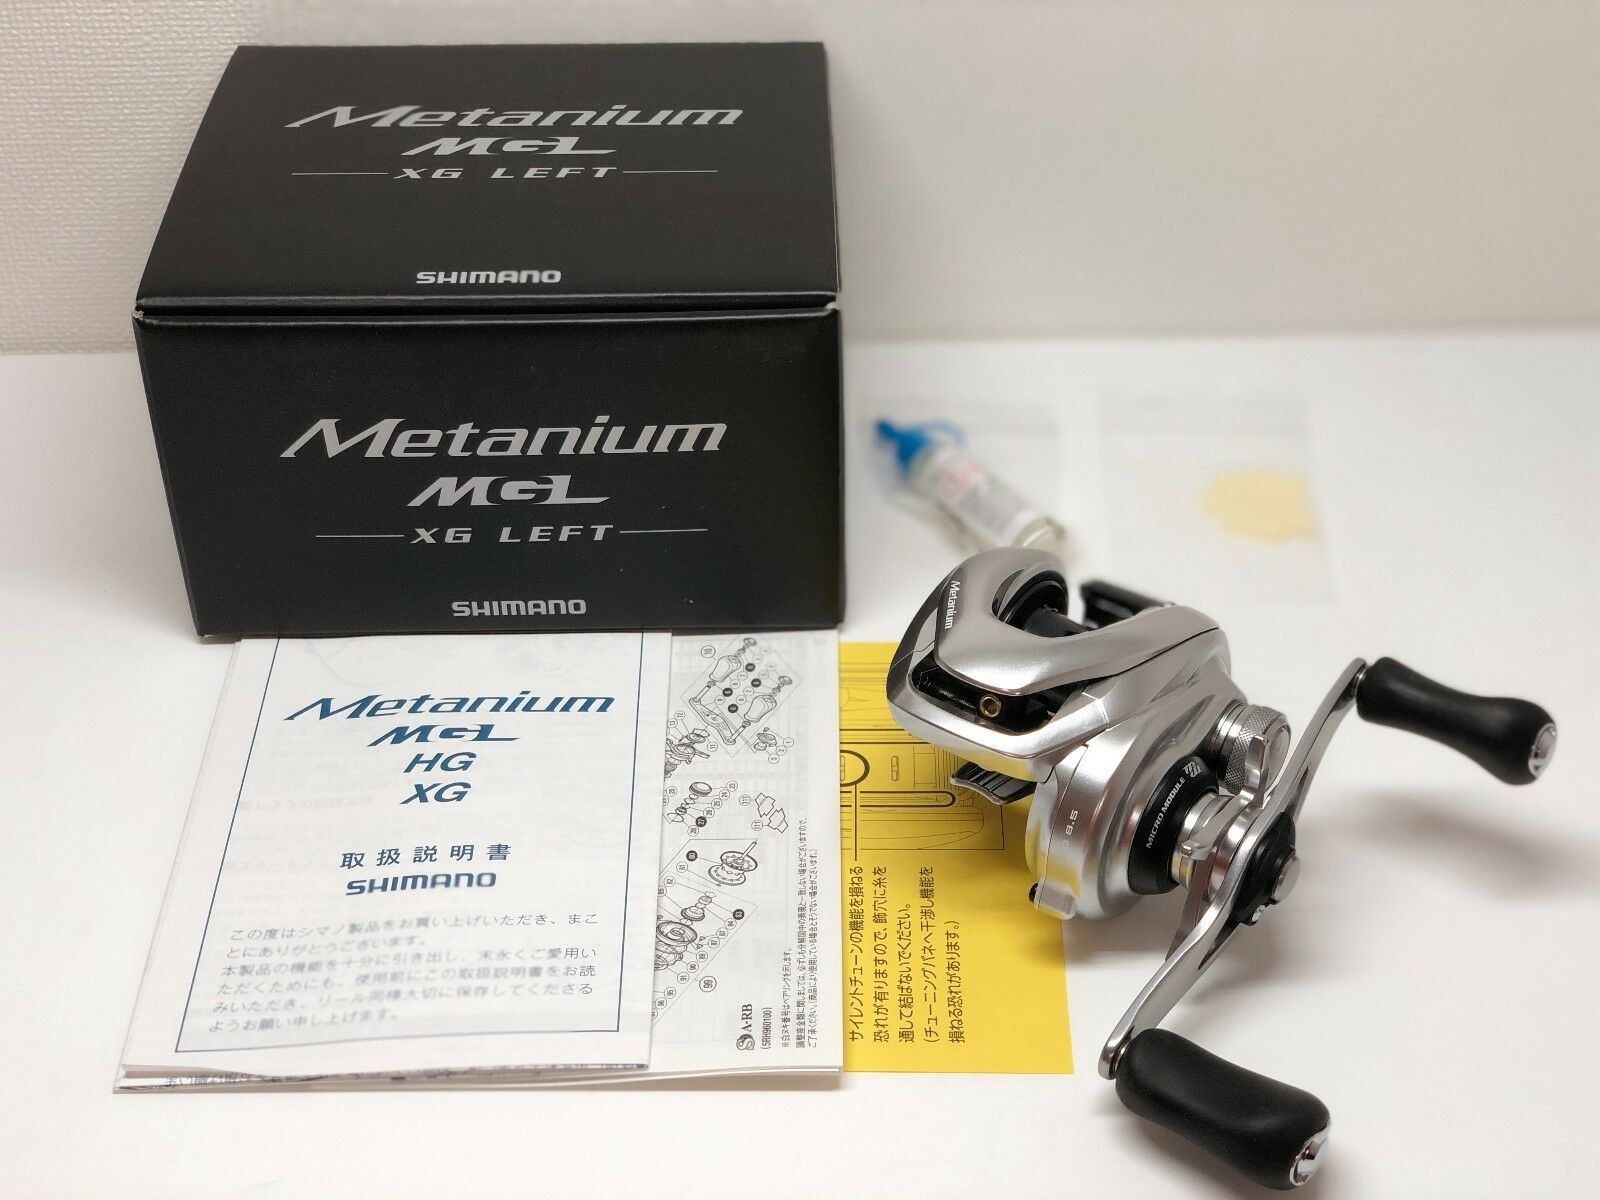 SHIMANO 16 METANIUM MGL XG LEFT  from Japan